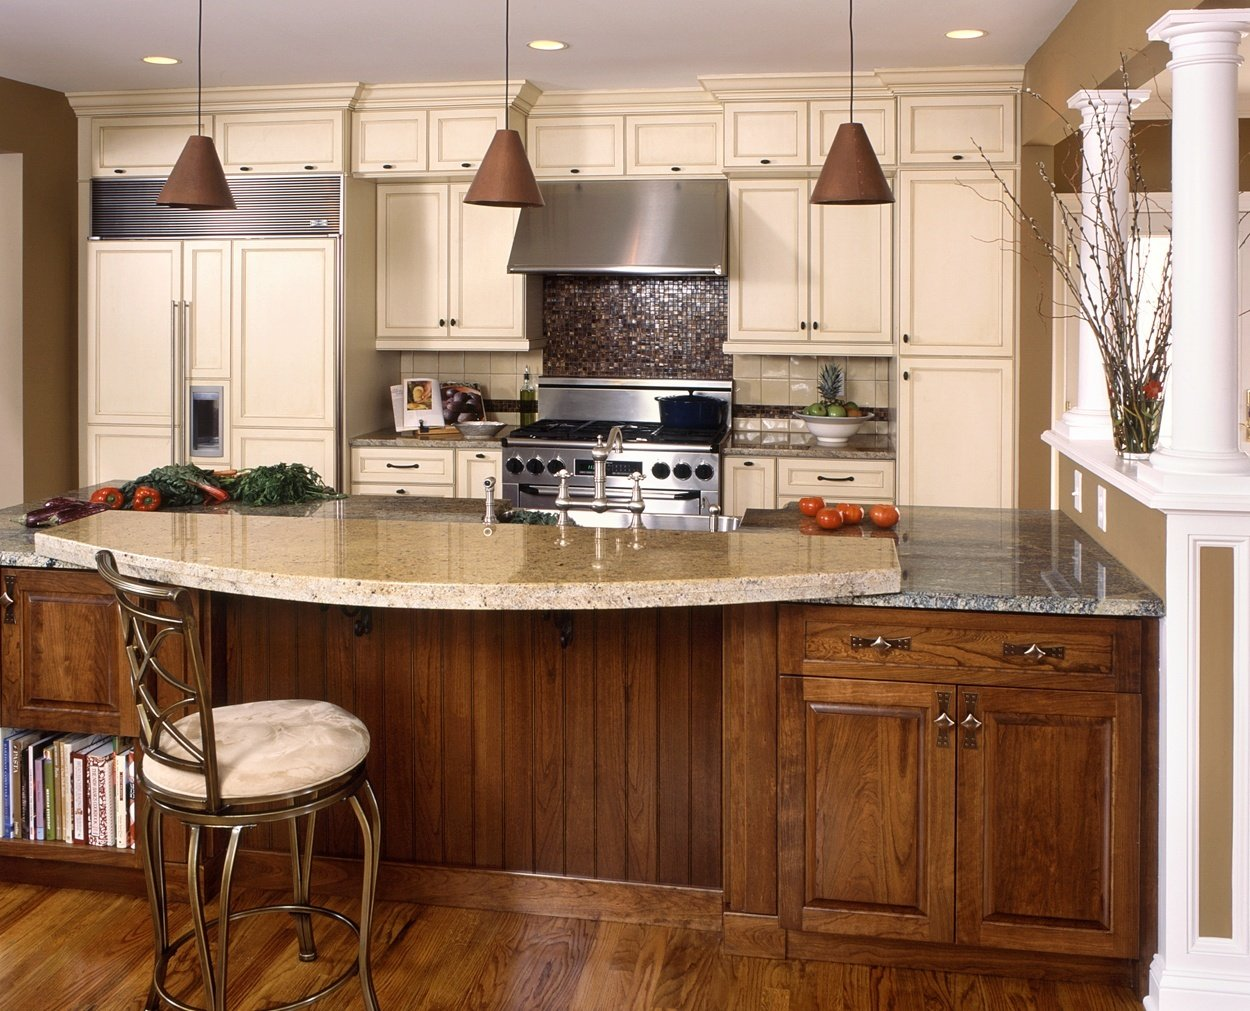 Bi level counter with glazed cabinets highlights this Clark Construction kitchen design.